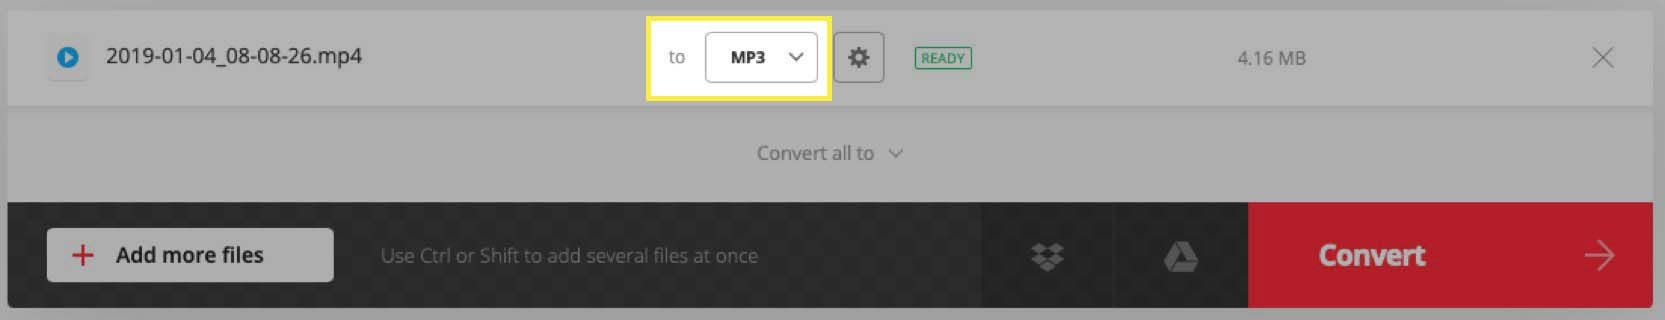 Confirm MP3 file format in Convertio's interface.